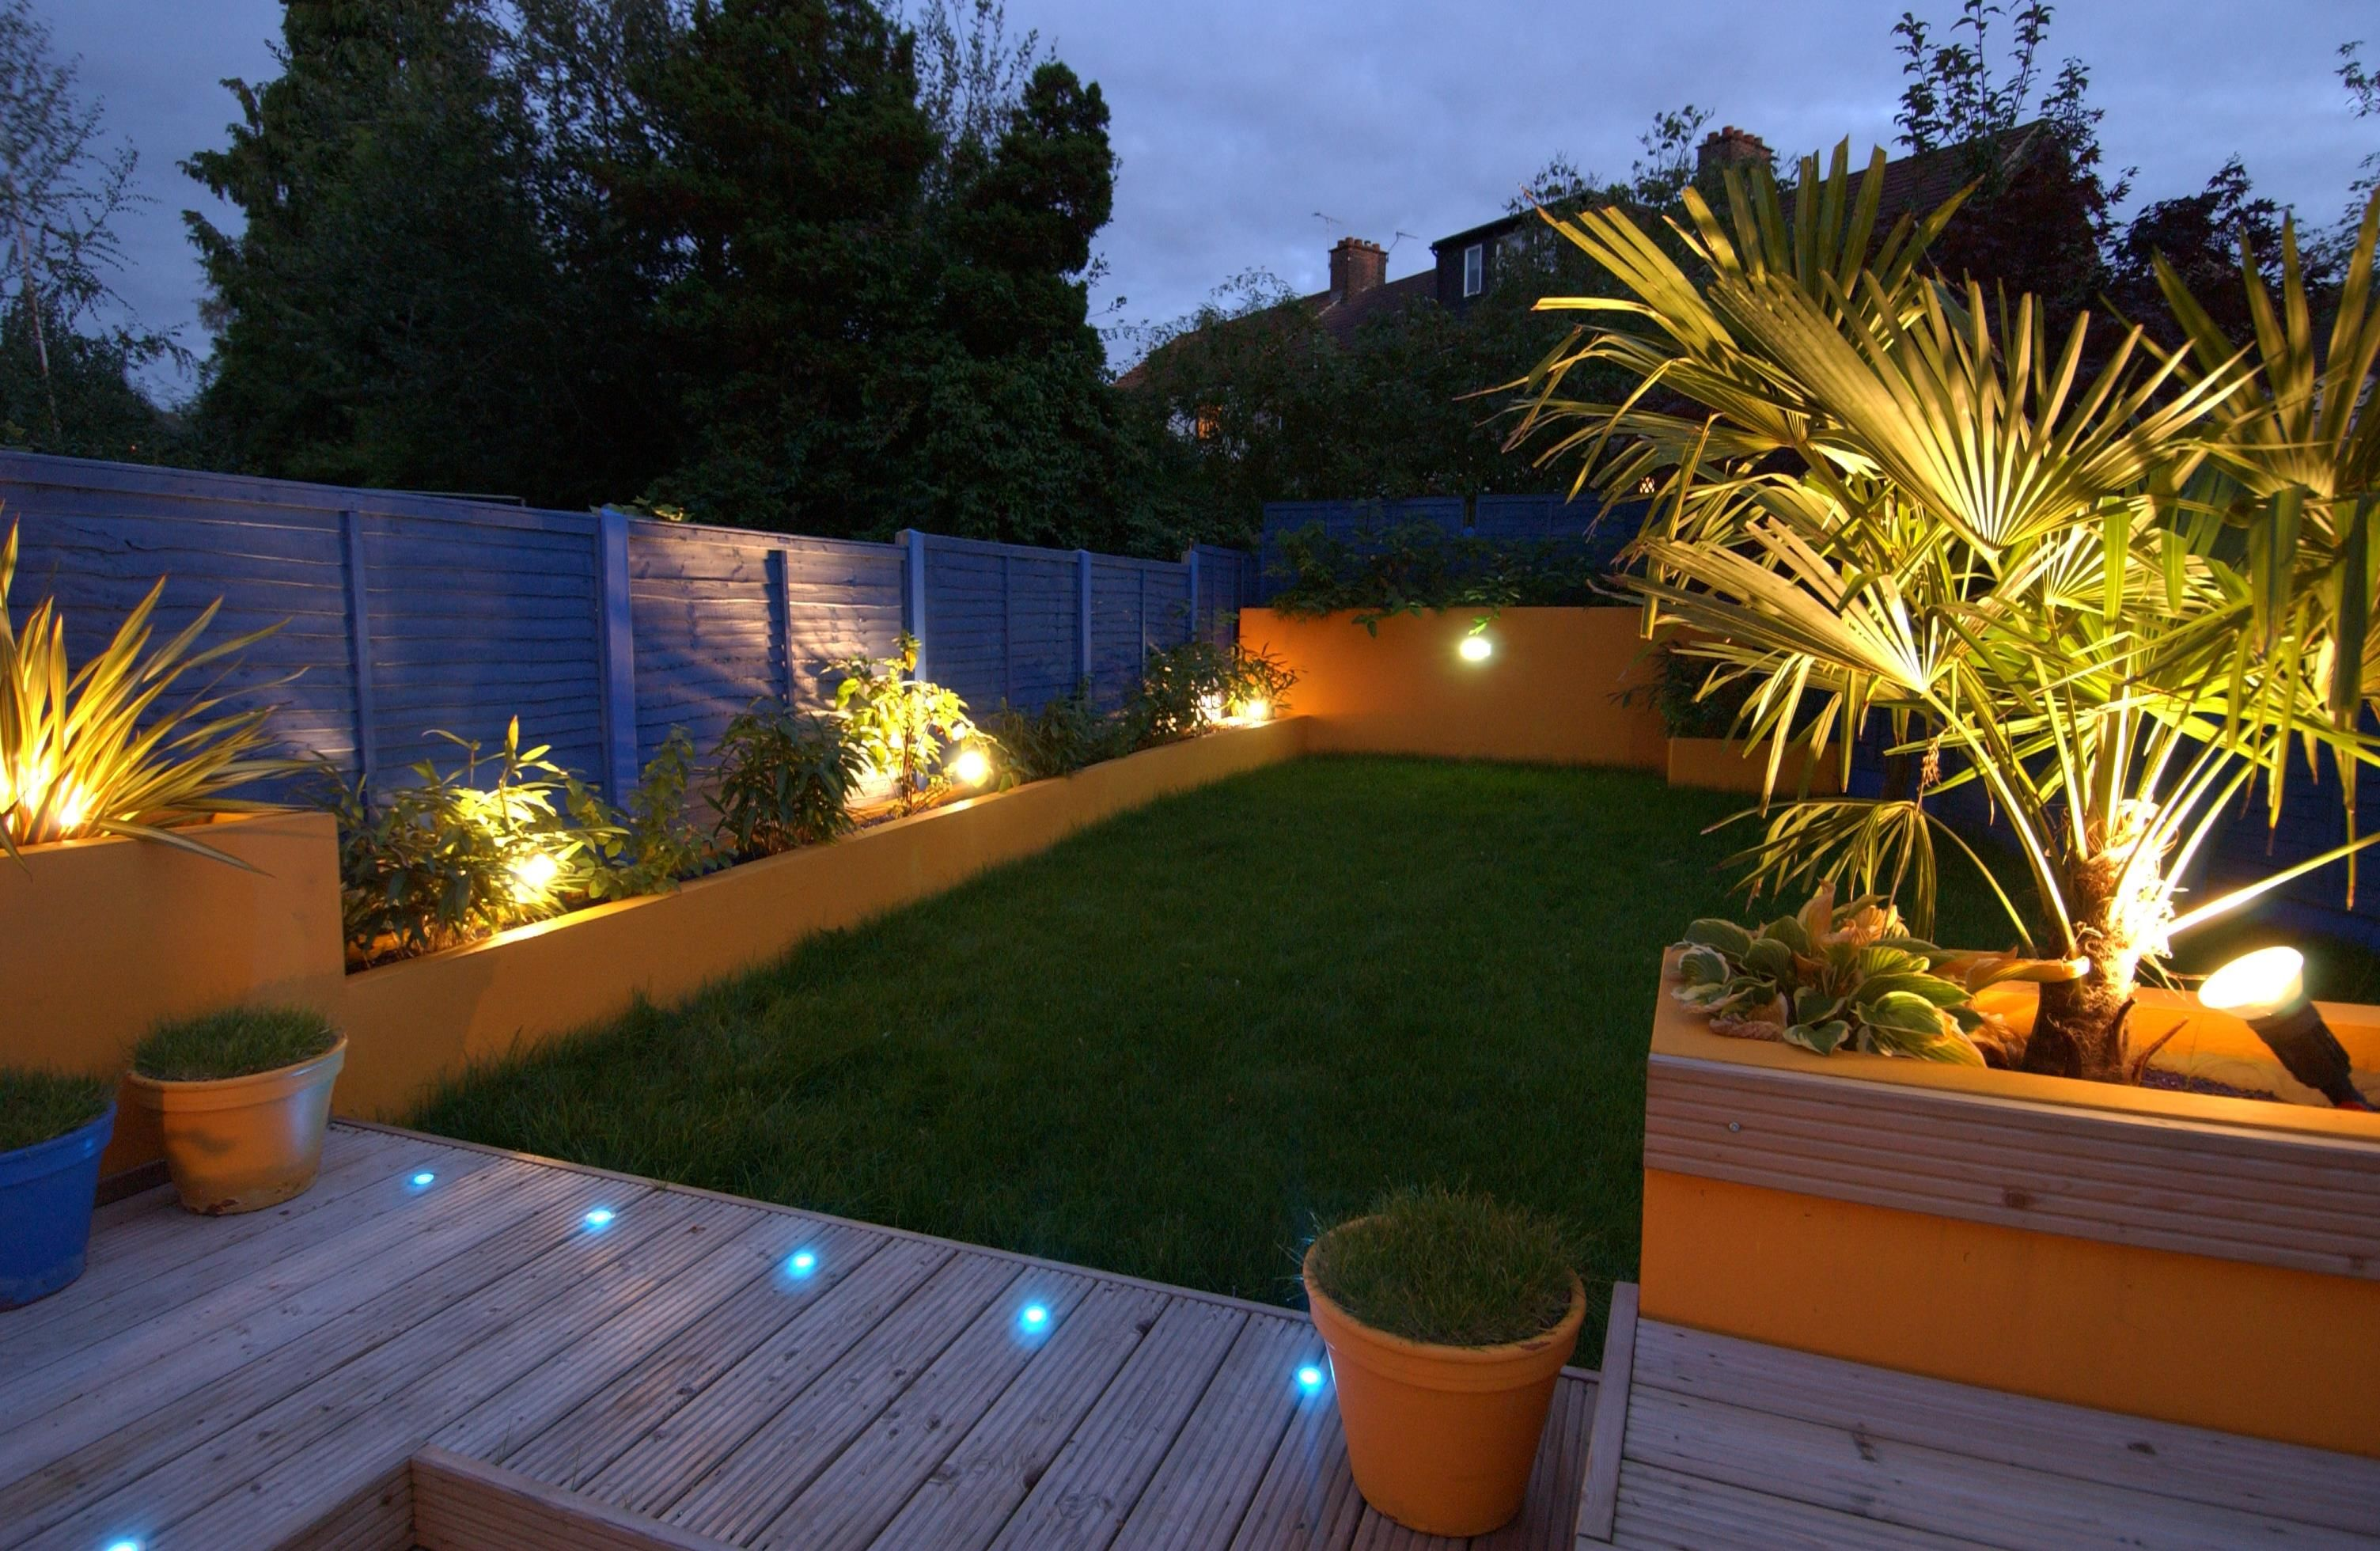 Creative Diy Landscaping With Garden Lights Garden Lighting Design Outdoor Garden Lighting Backyard Landscaping